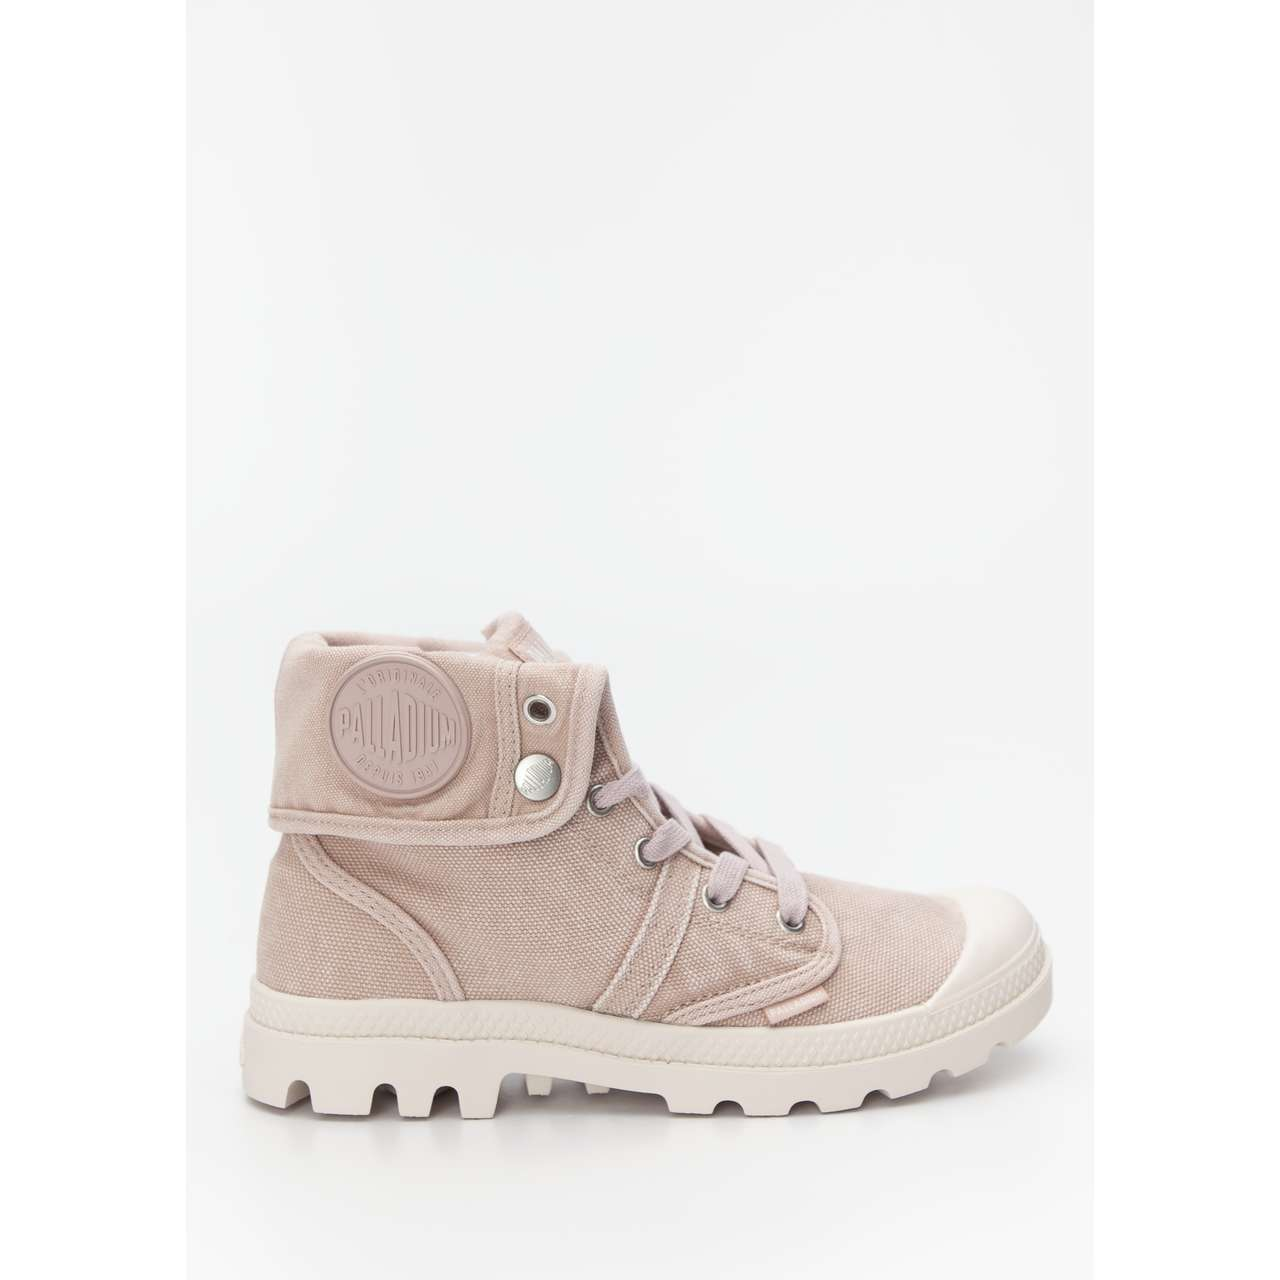 Buty Palladium  <br/><small>PALLABROUSSE BAGGY W 605 ADOBE ROSE </small>  92478-605